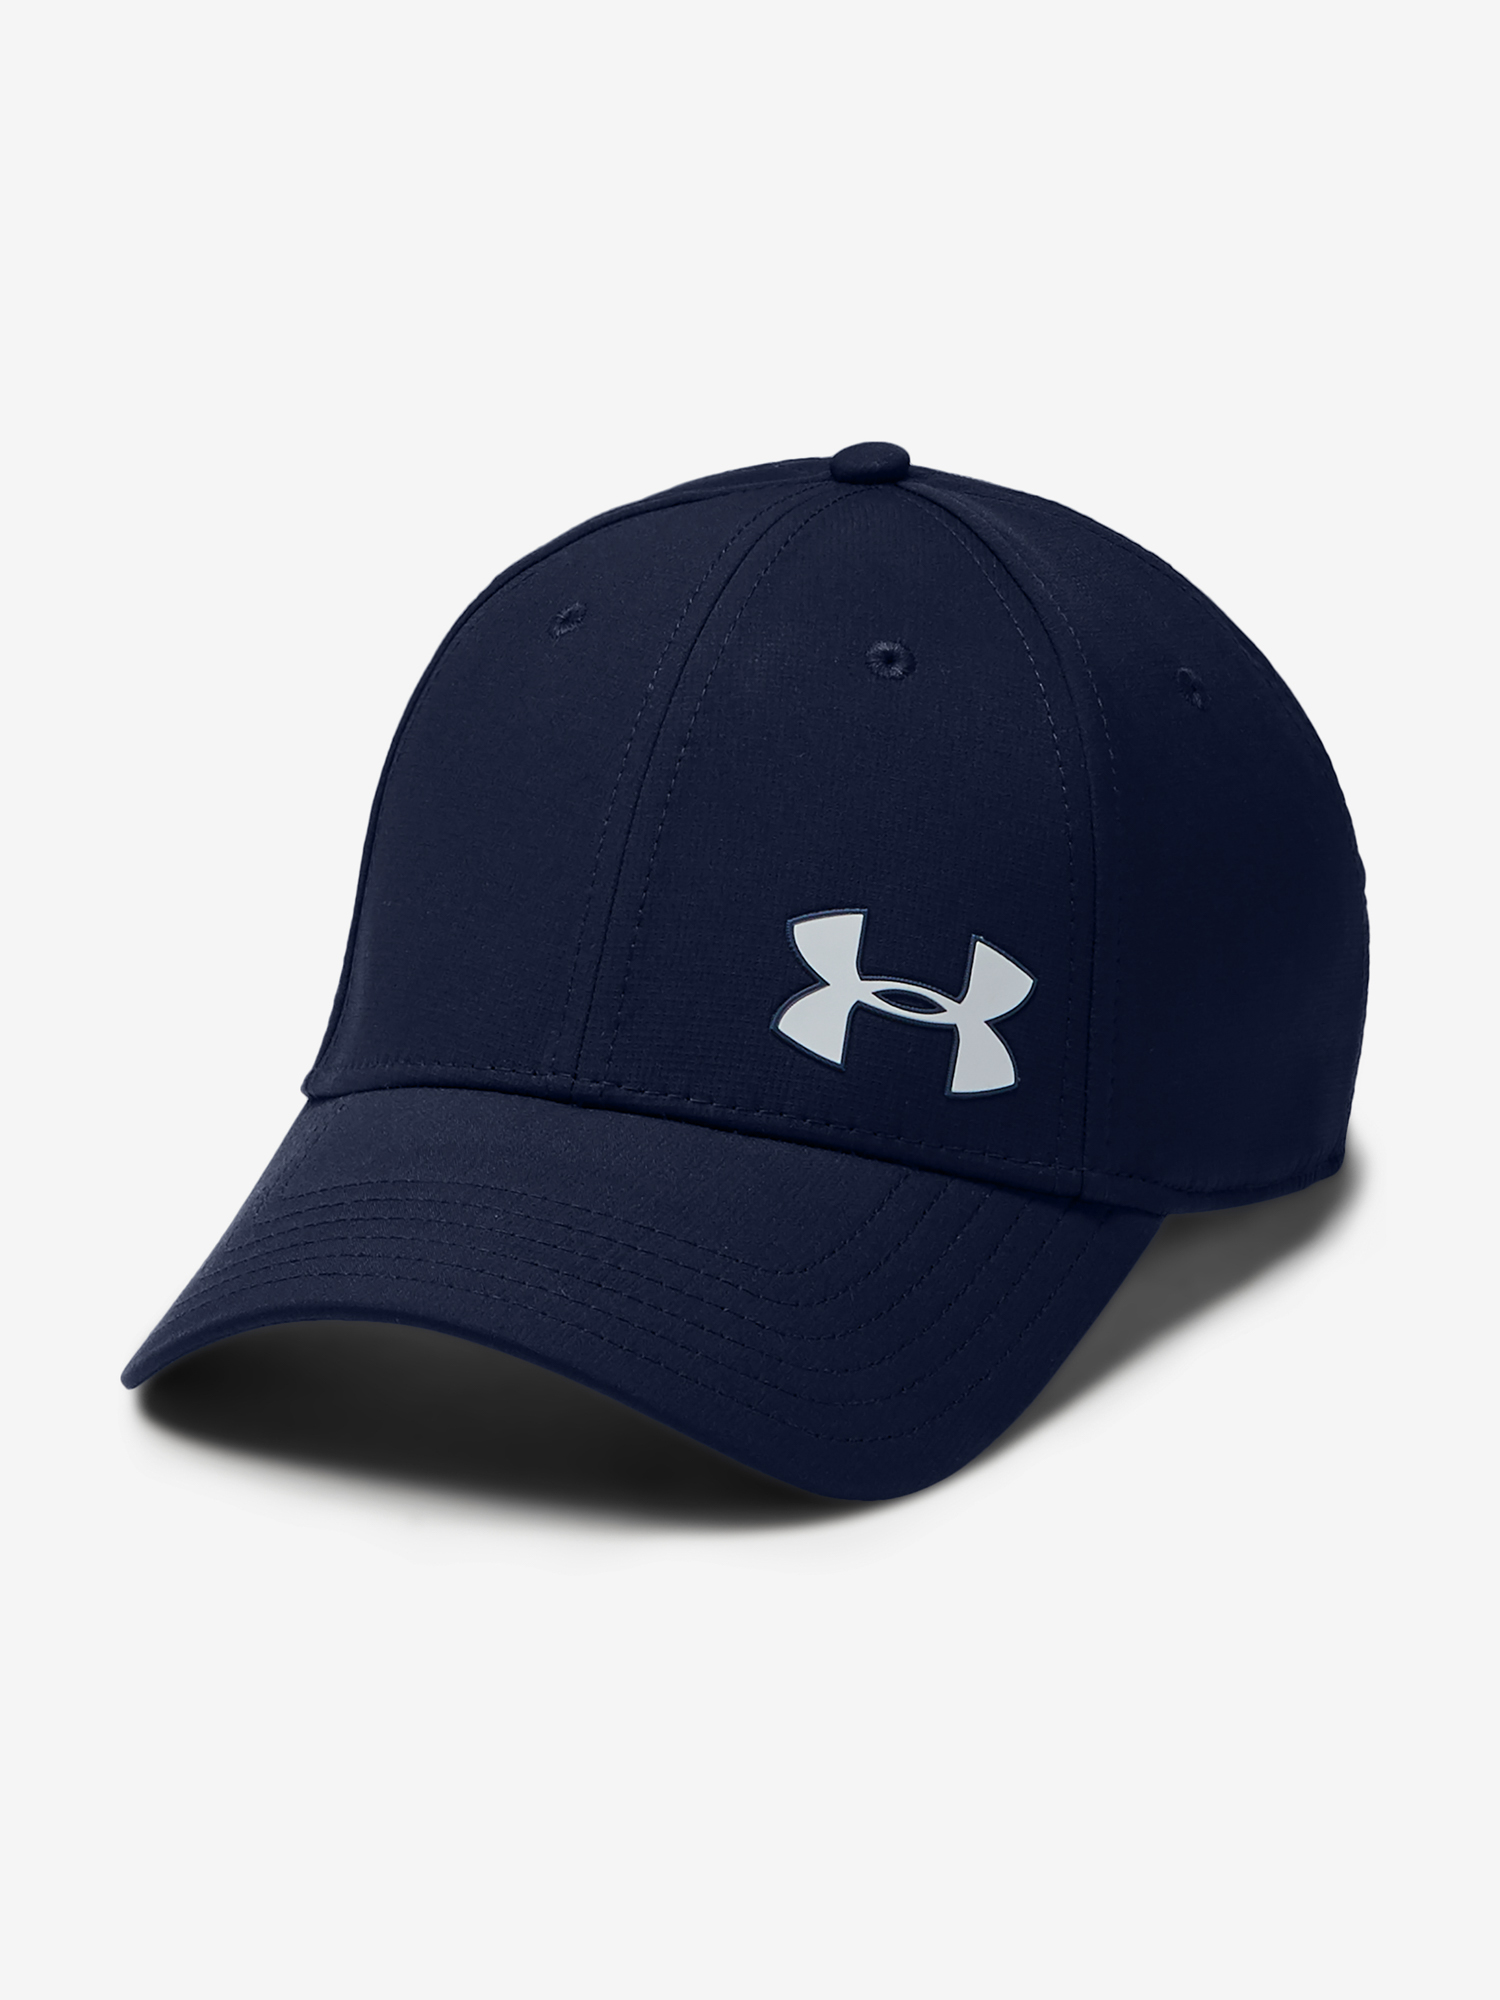 Šiltovka Under Armour Men\'s Golf Headline Cap 3.0 (1)